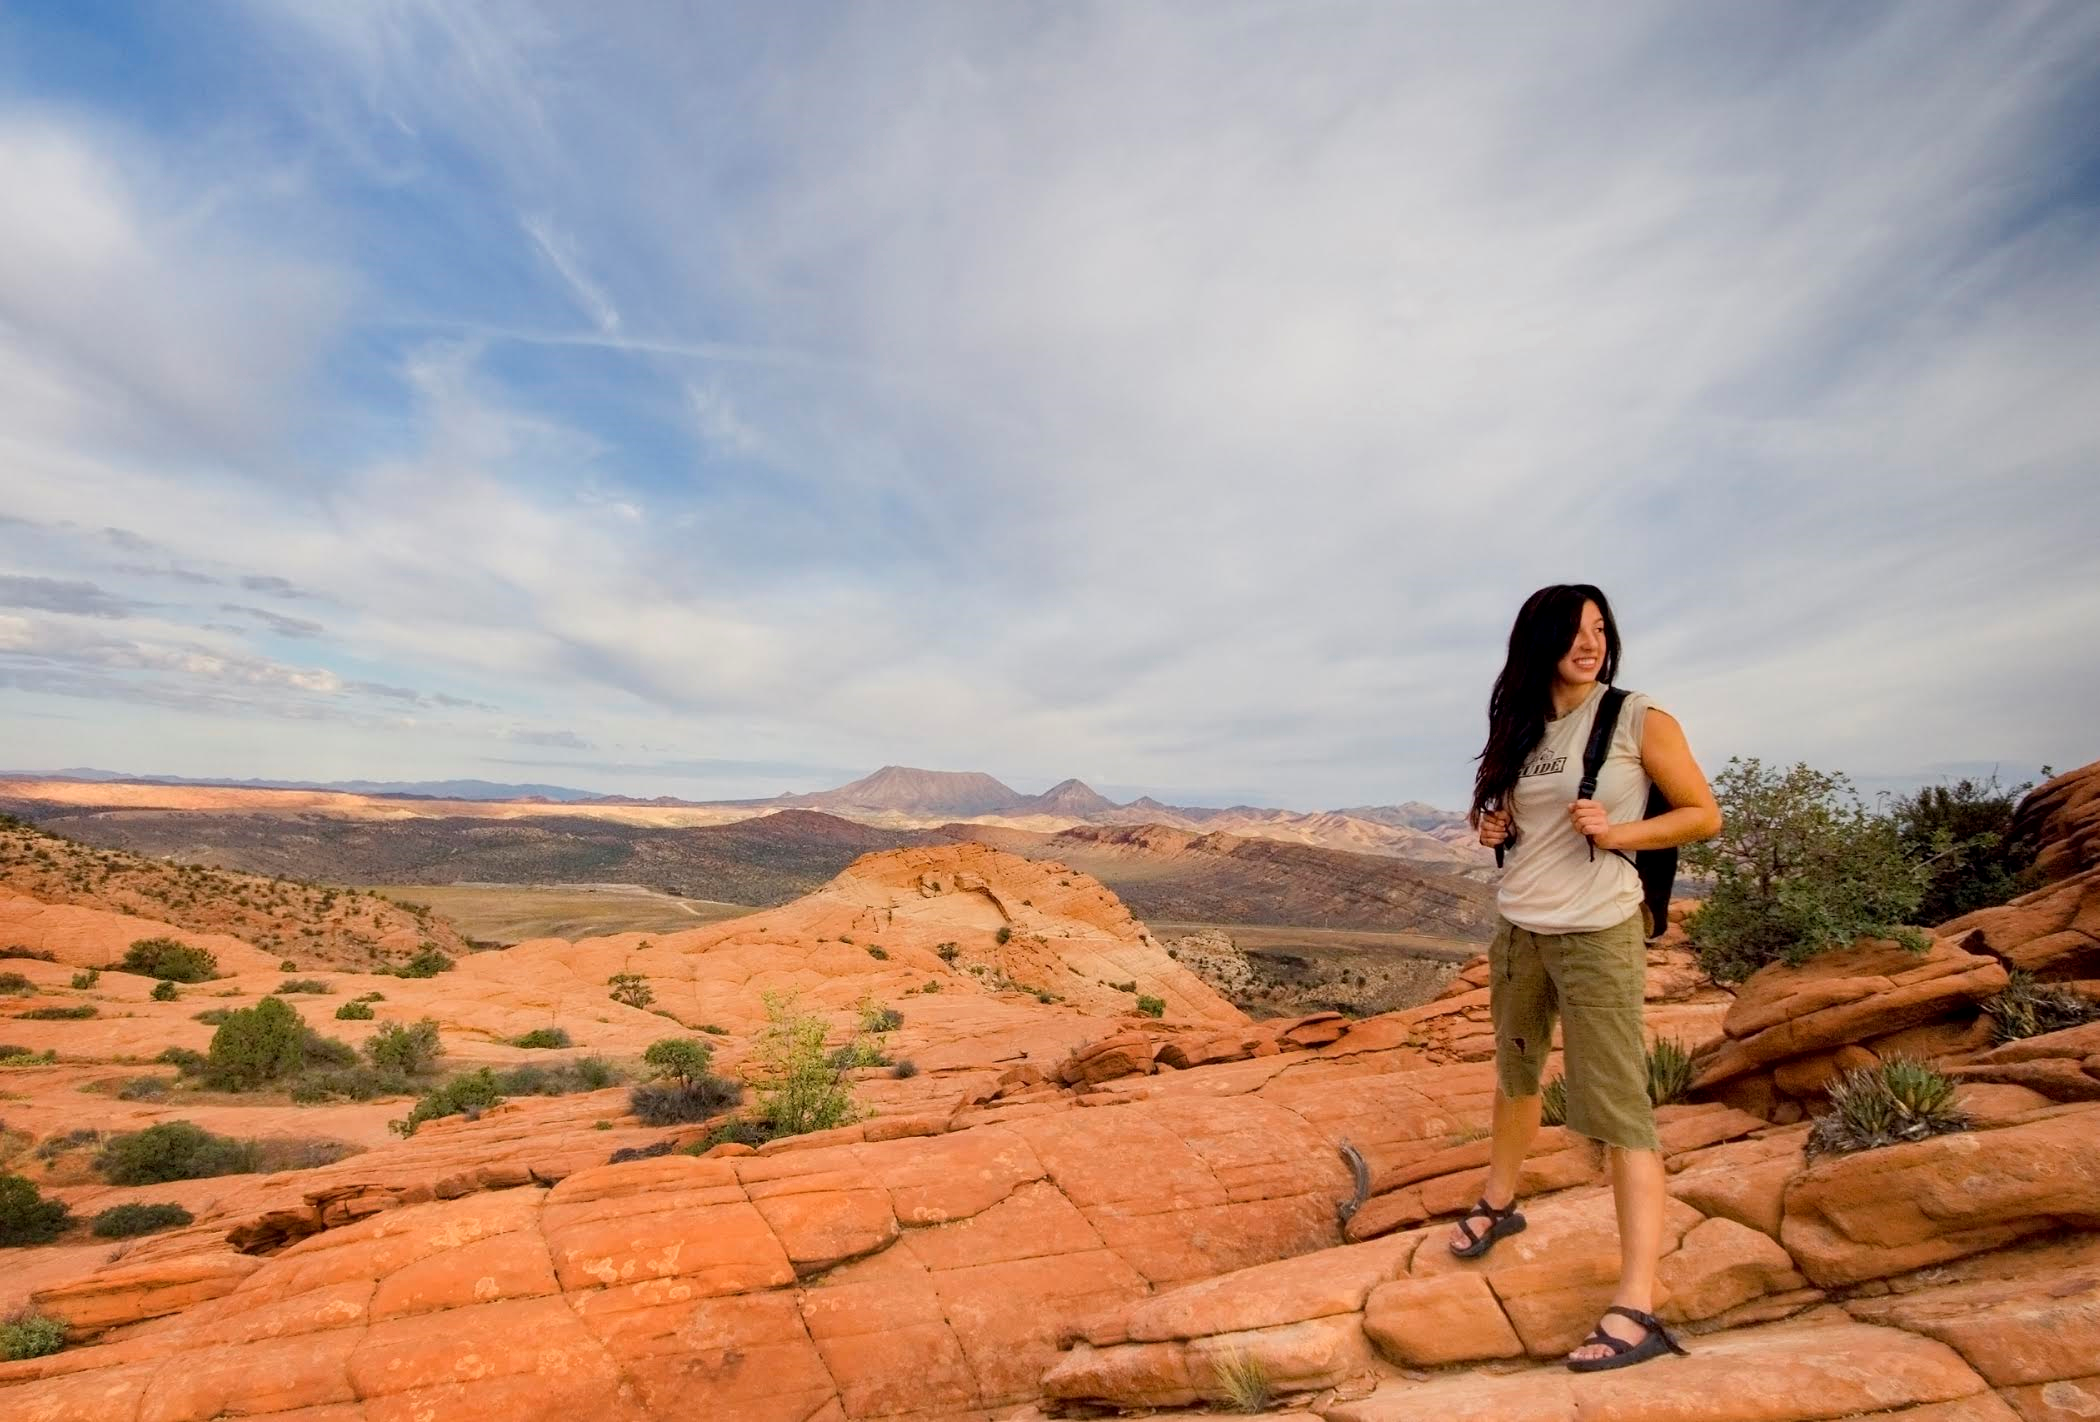 A hiking guide at Green Valley Spa pauses on the red rocks of Southern Utah during one of the spa's daily guided hikes, St. George, Utah, date not specified | Photo courtesy of Green Valley Spa, St. George/Cedar City News